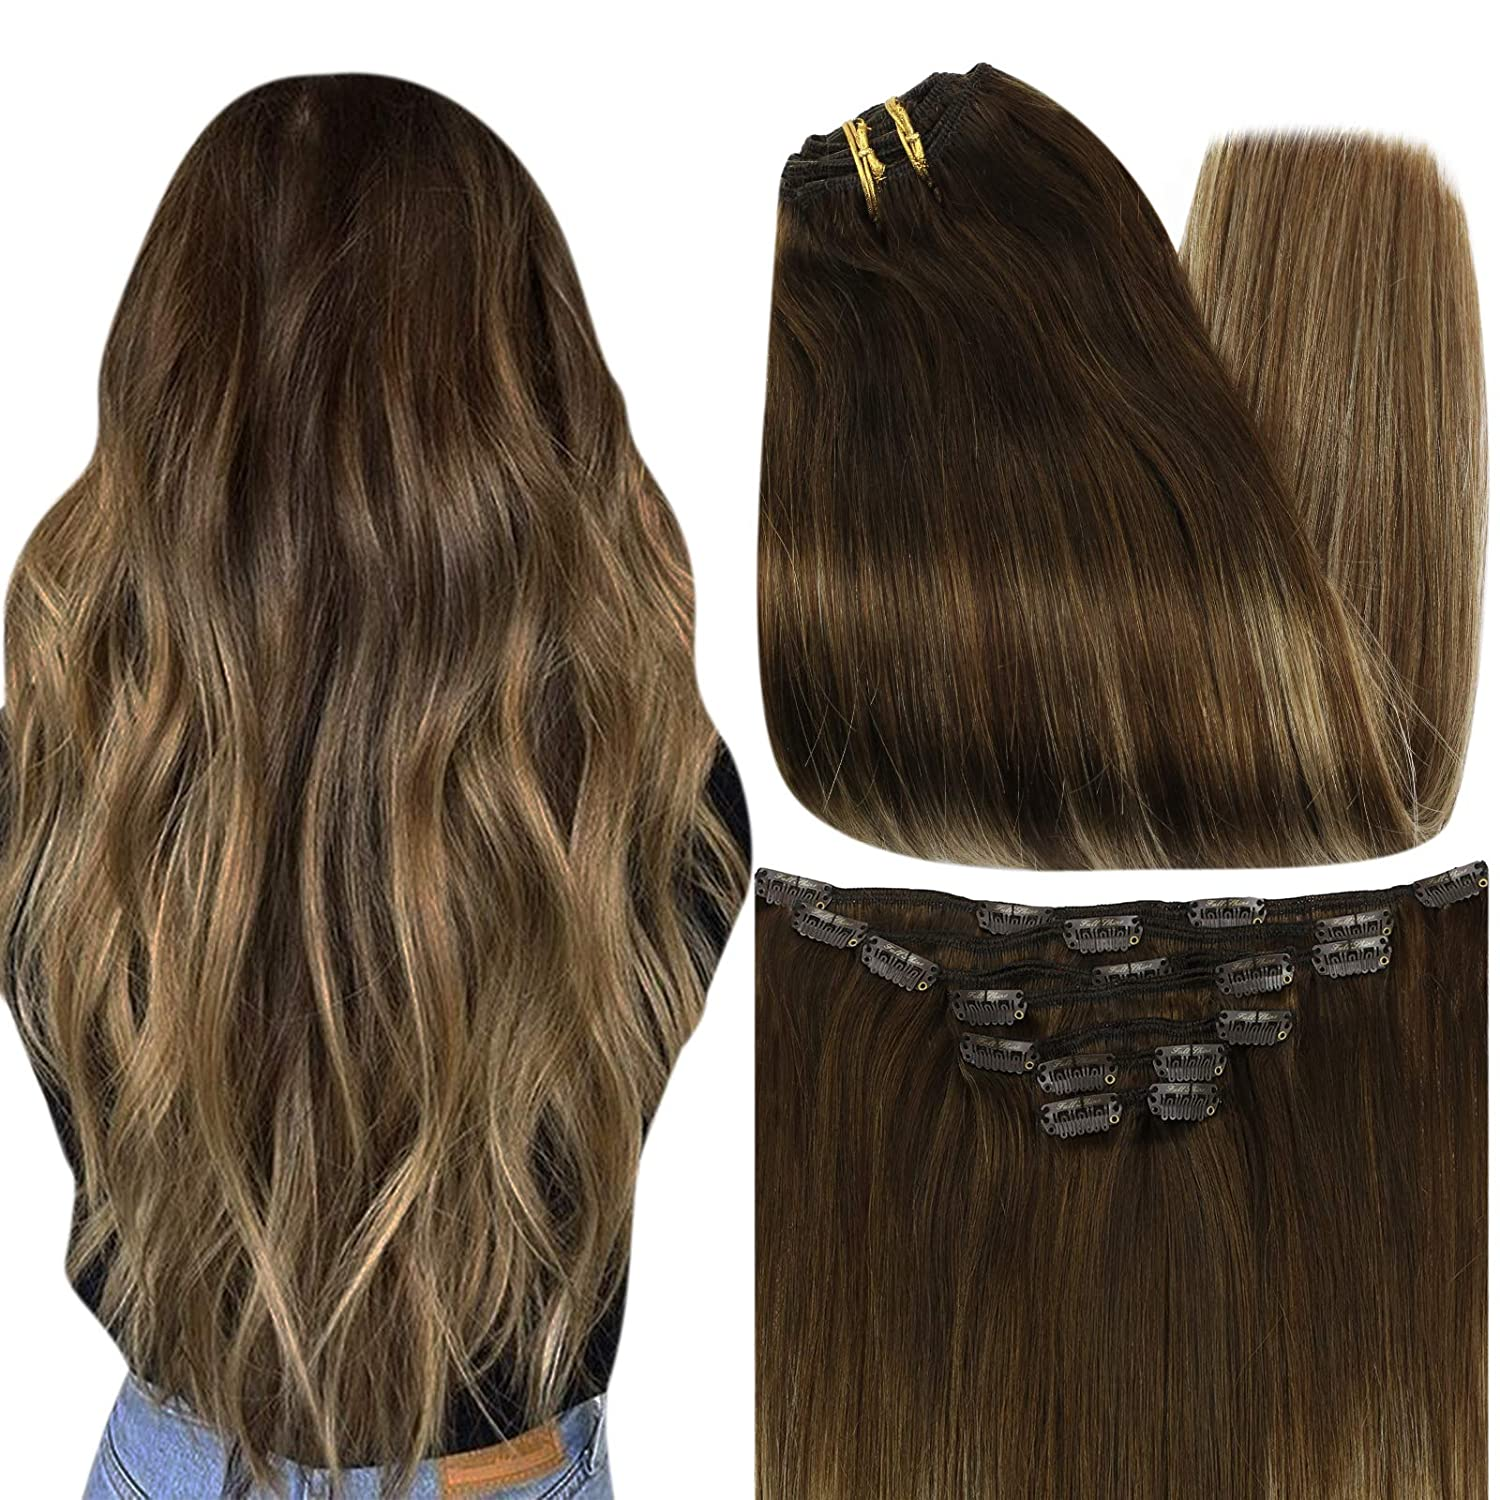 Full Shine Real Hair Clip Ins 18 Inch Clip In Hair Extensions Full Head Set Extensions Color 3 Dark Brown Fading to 14 With 6 Brown Brazilian Hair Extensions 7 Pcs 100 Gram Remy Clip on Hair